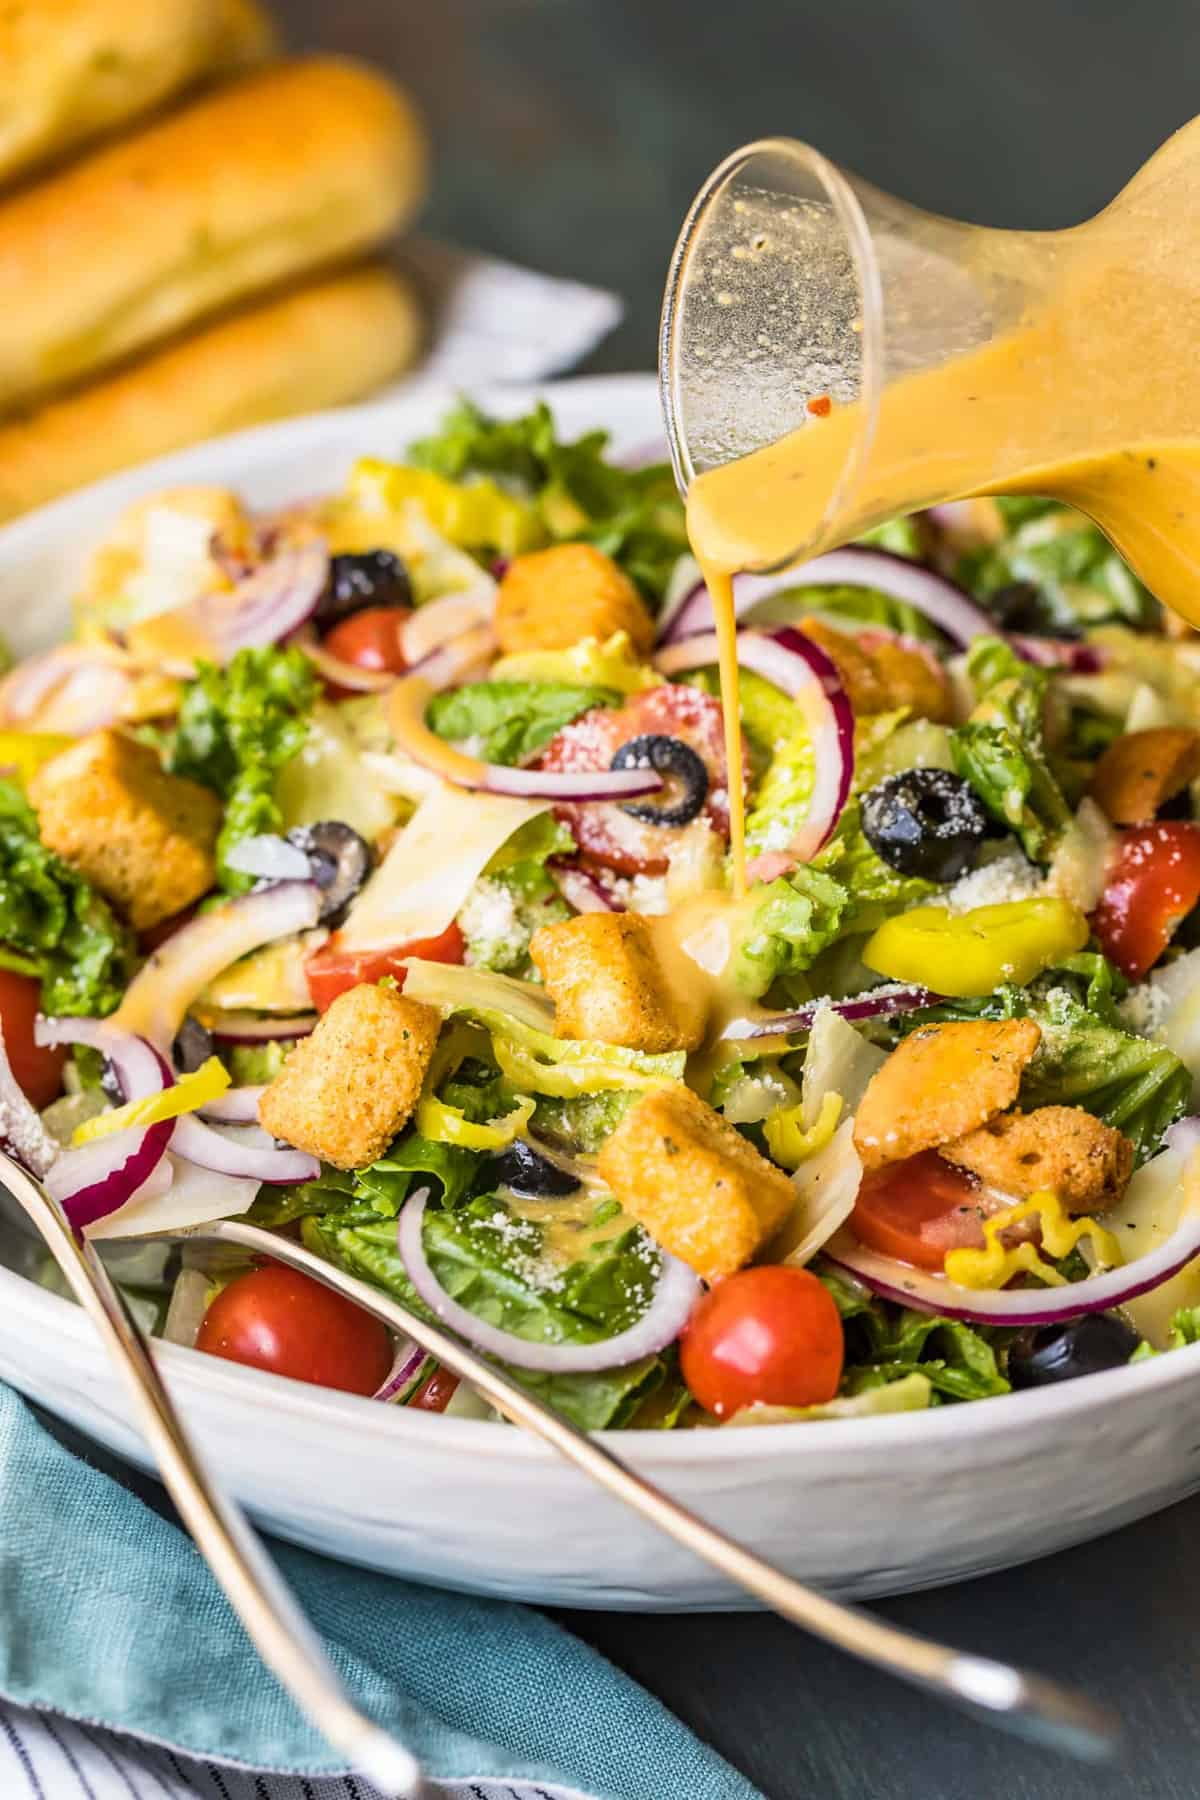 Olive Garden Salad With Copycat Dressing Video